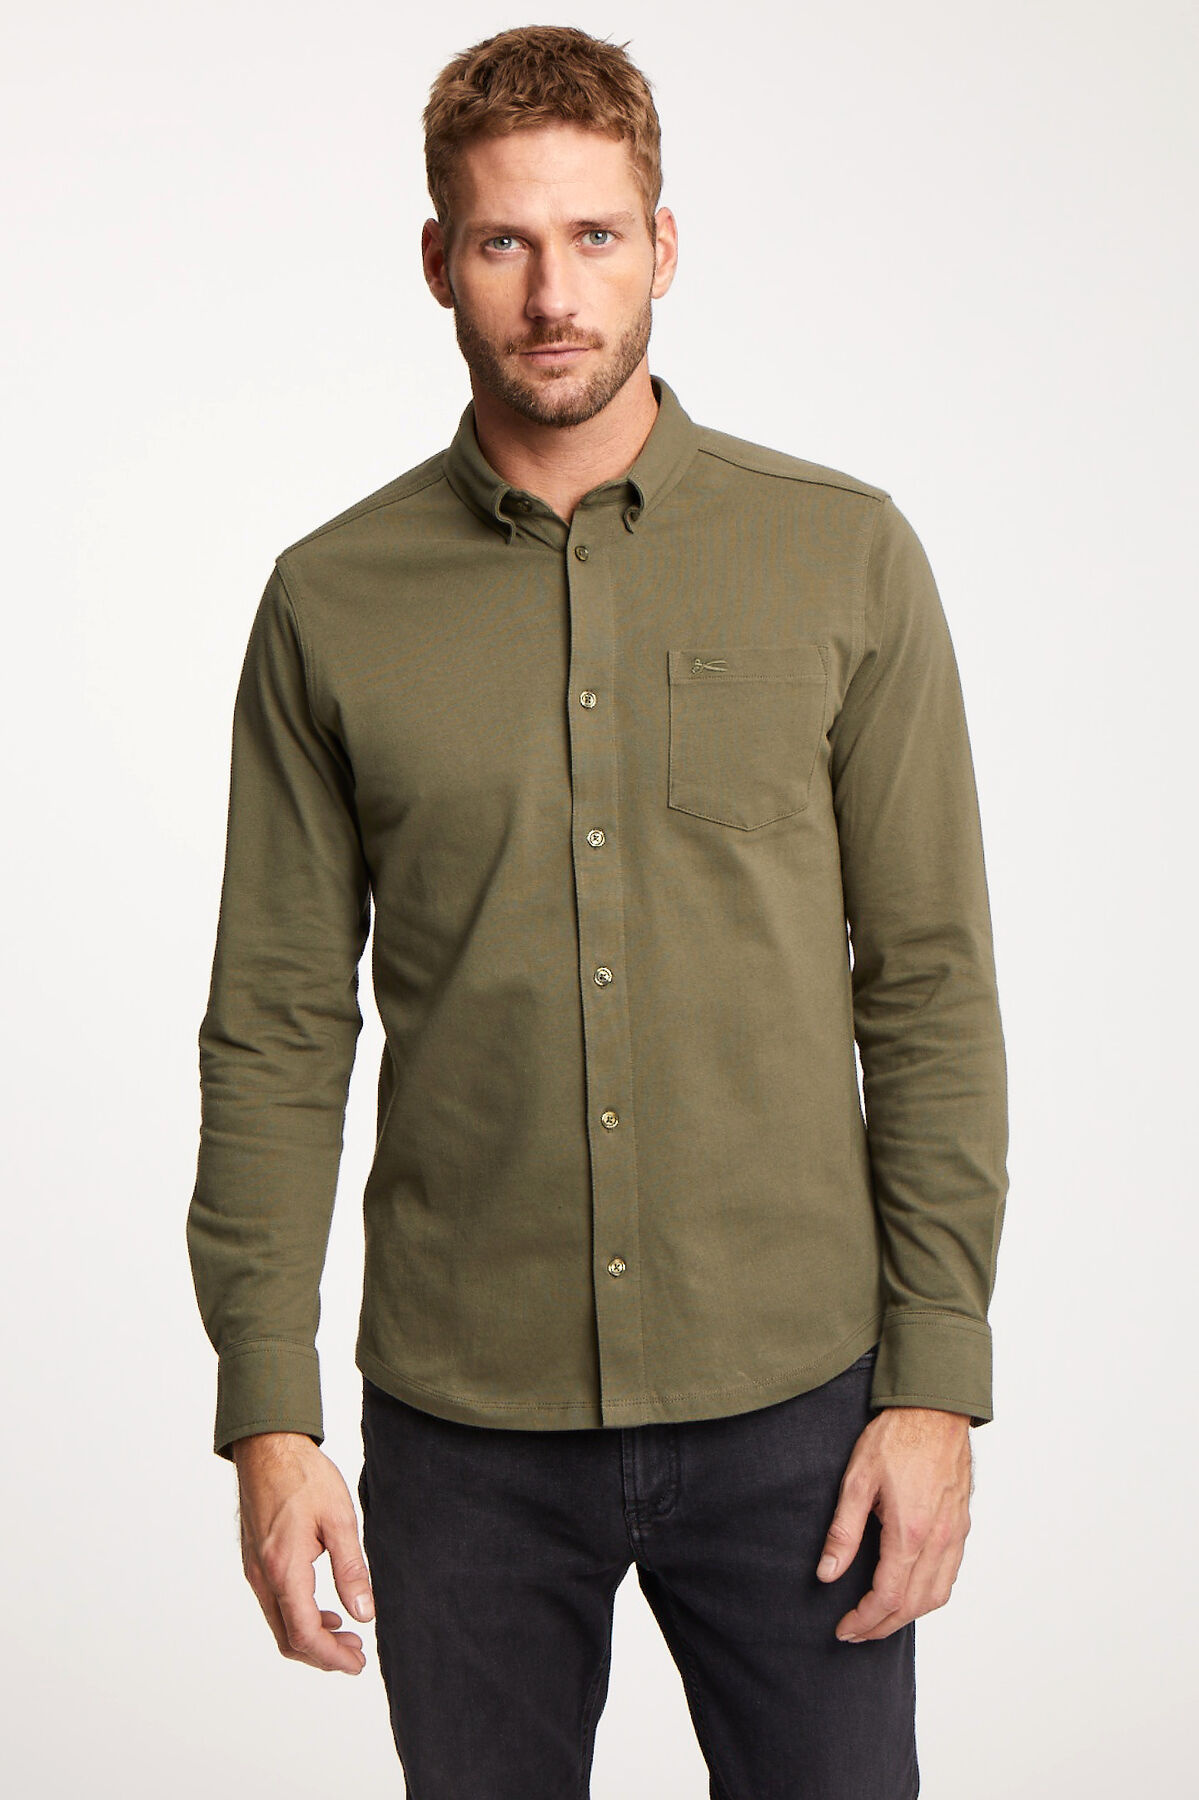 BRIDGE SHIRT Premium Cotton Jersey - Slim Fit